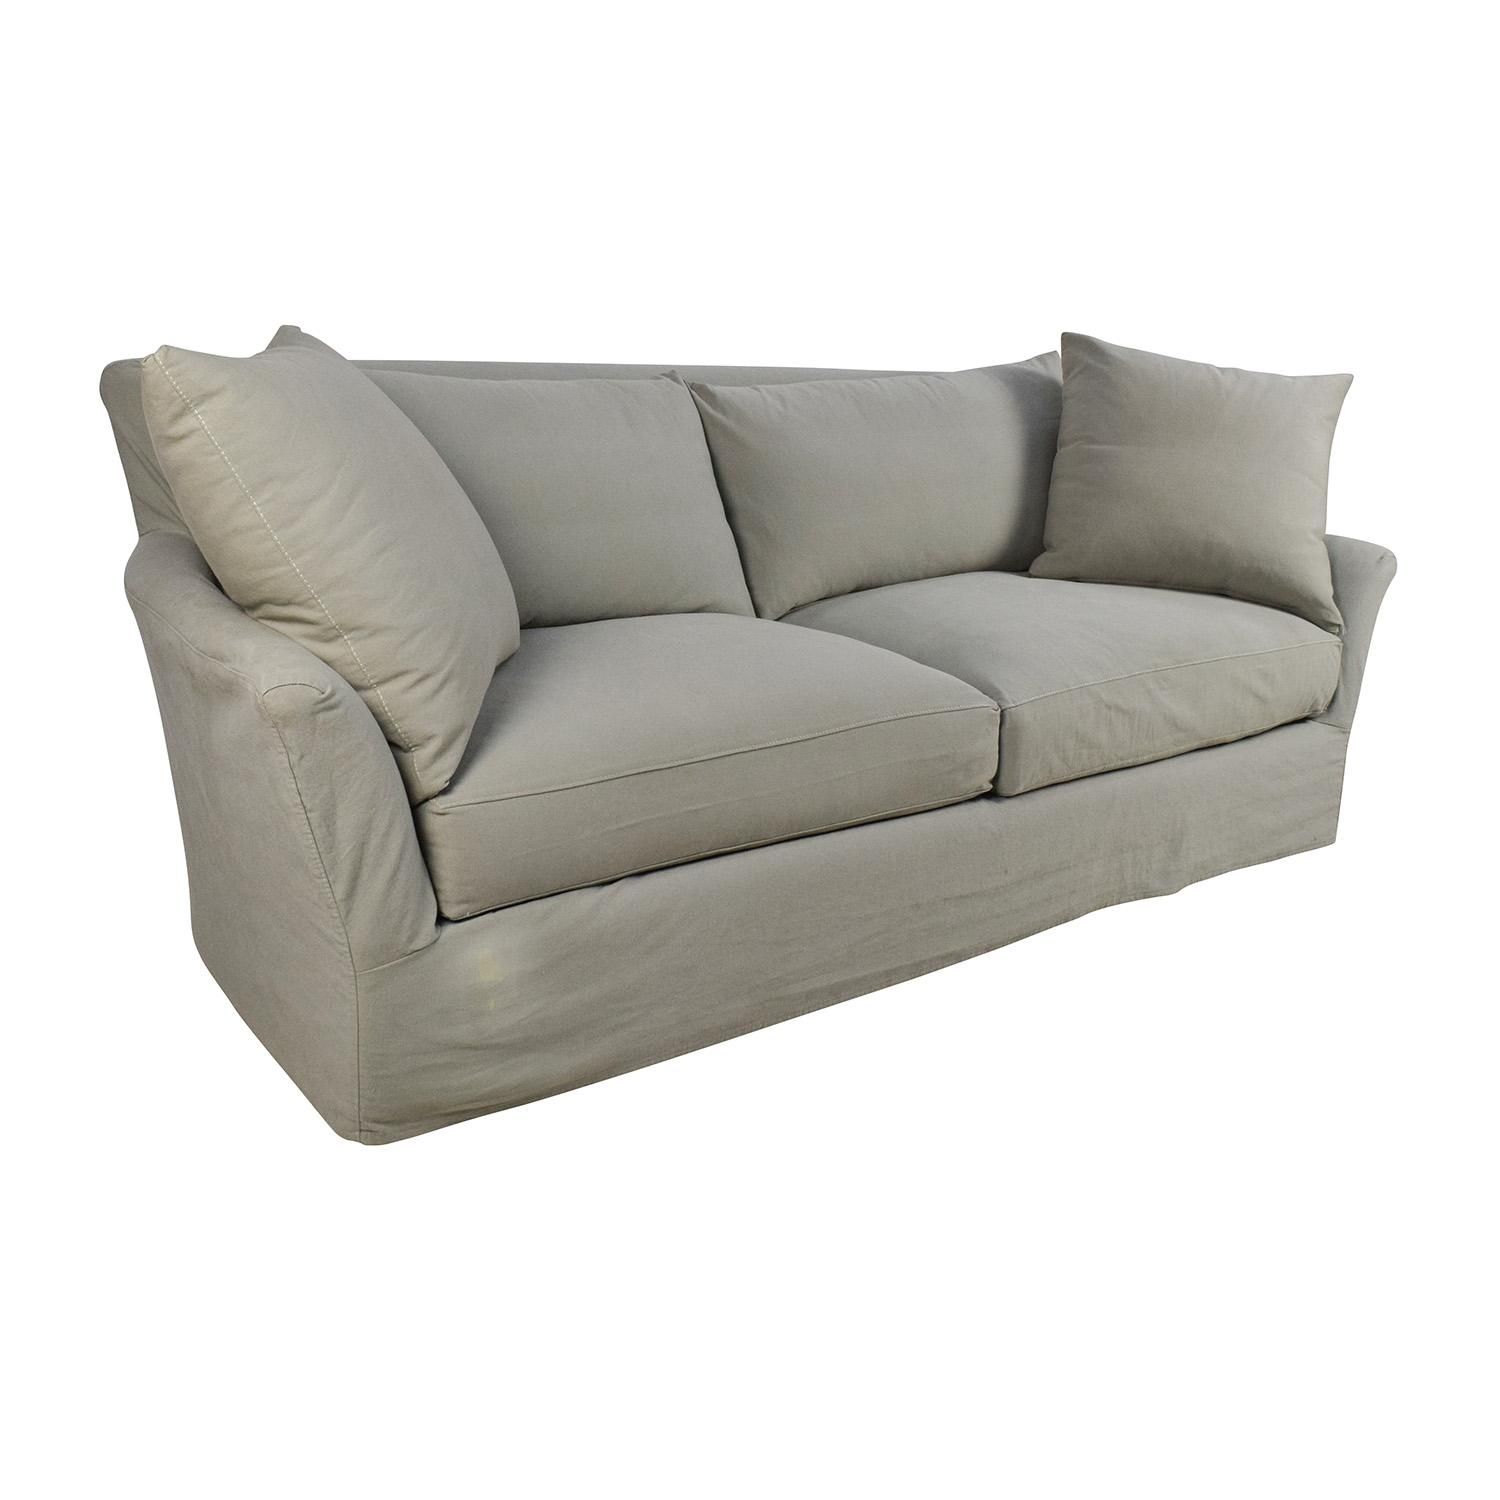 70% Off - Crate And Barrel Crate & Barrel Willow Sage Green Sofa pertaining to Crate and Barrel Sofa Sleepers